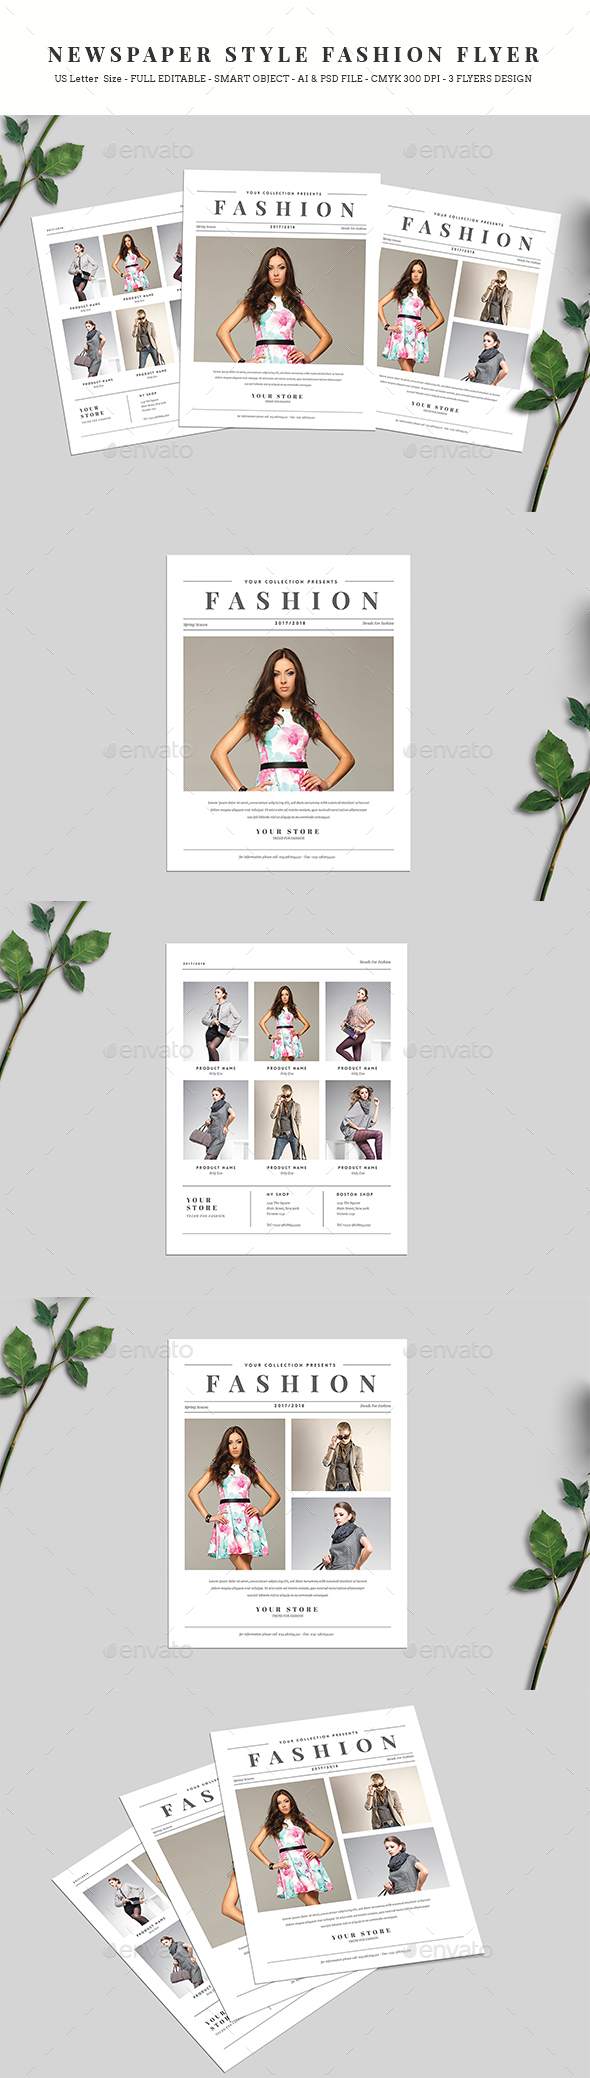 Newspaper Style Fashion Flyer - Commerce Flyers